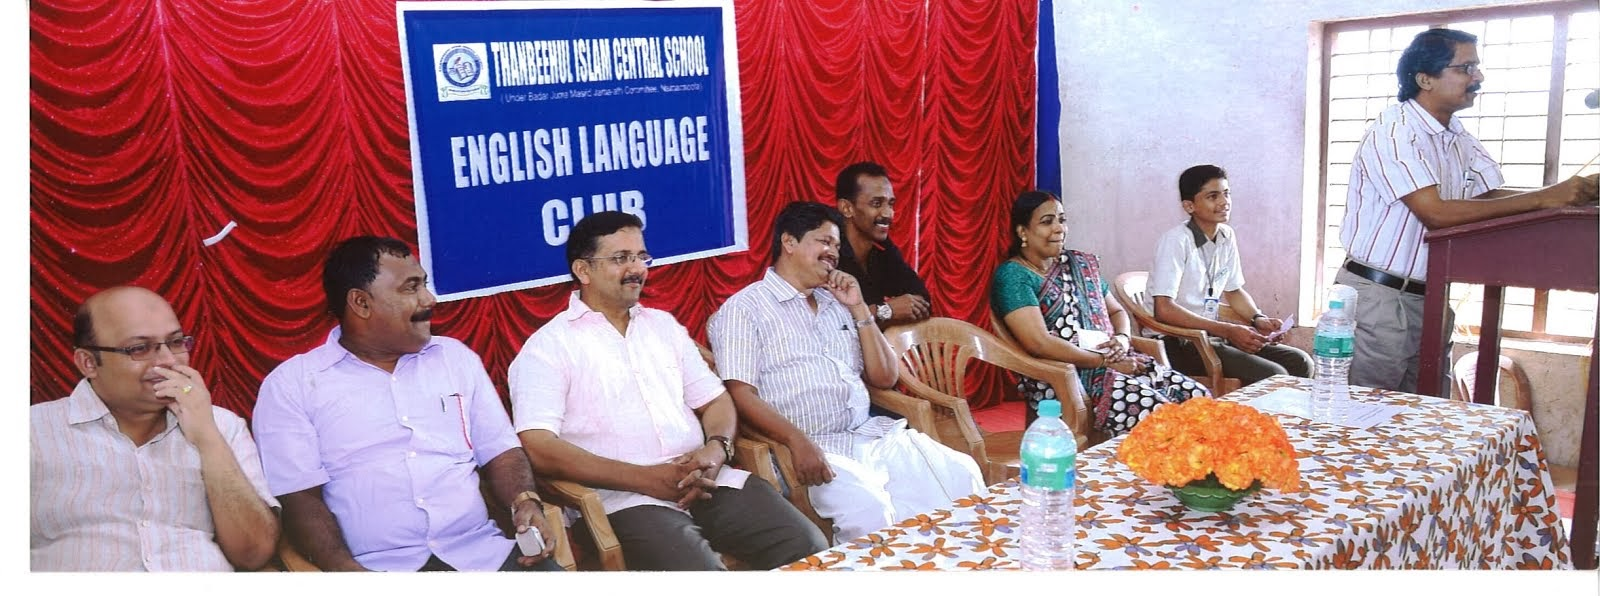 Inauguration of English Club